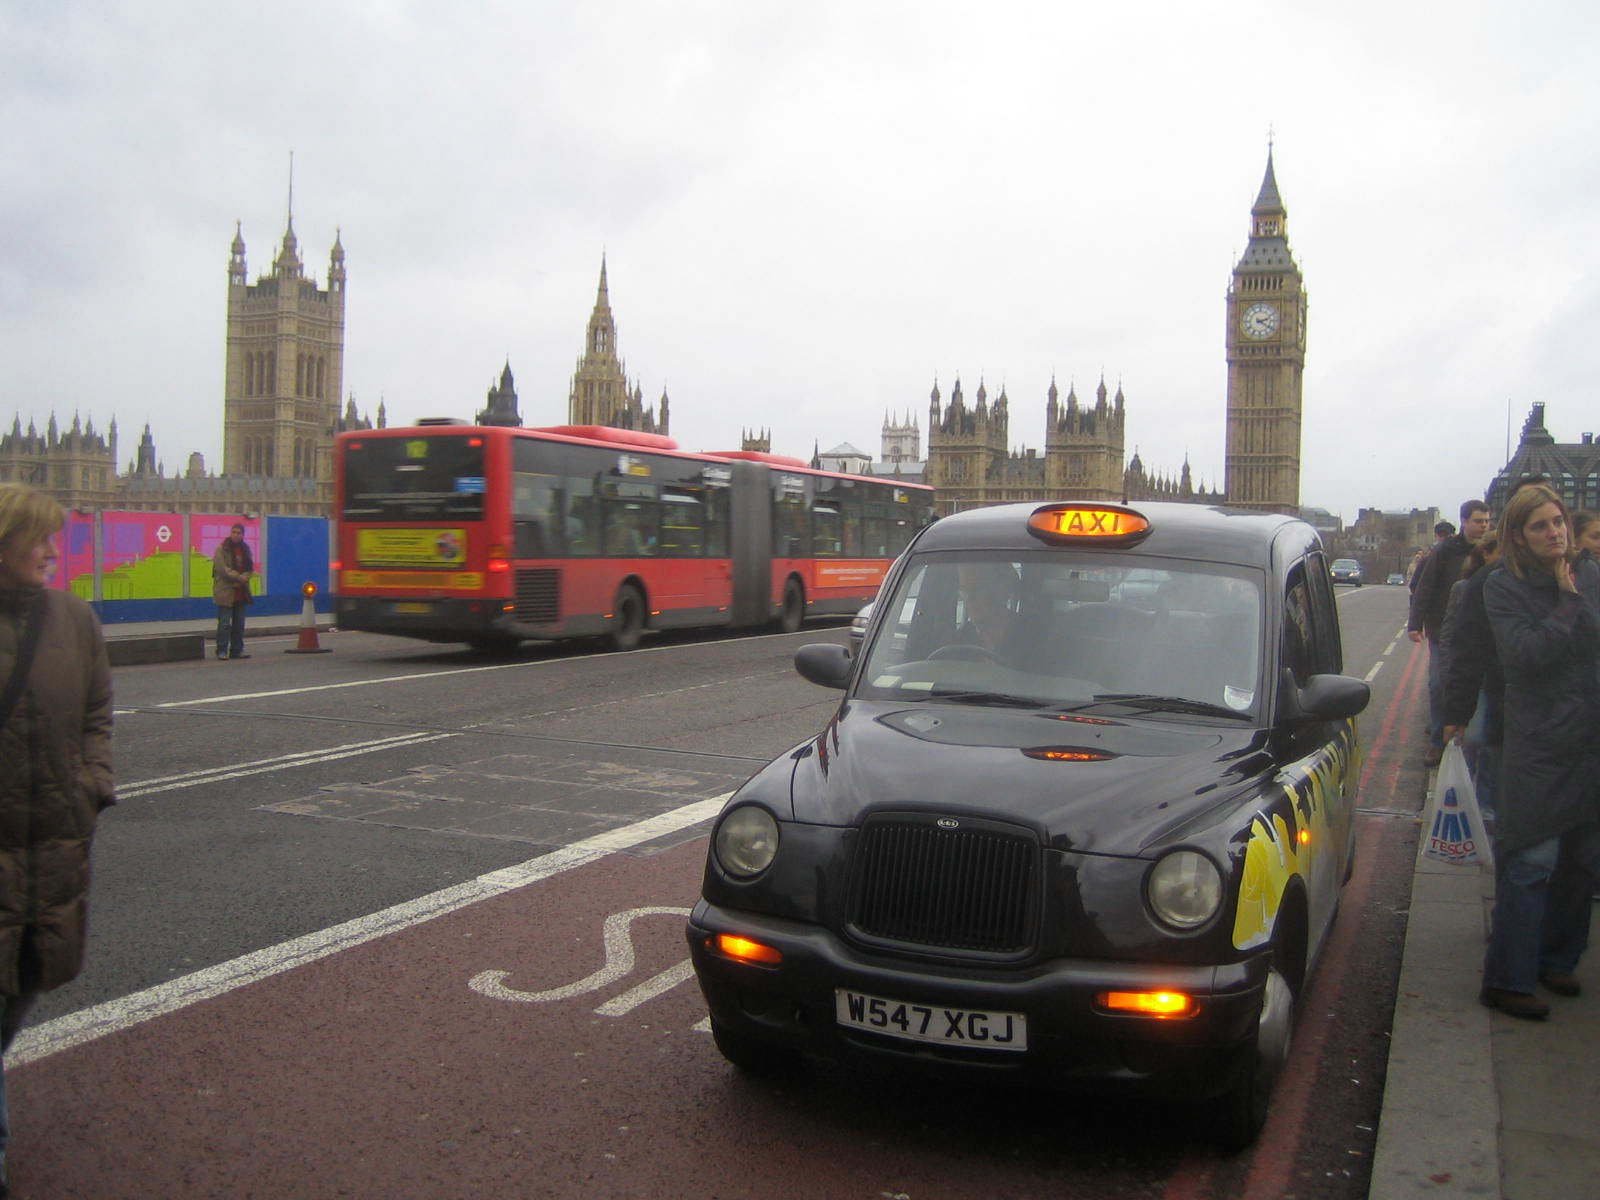 Black cabs, red buses, grey skies... welcome to London